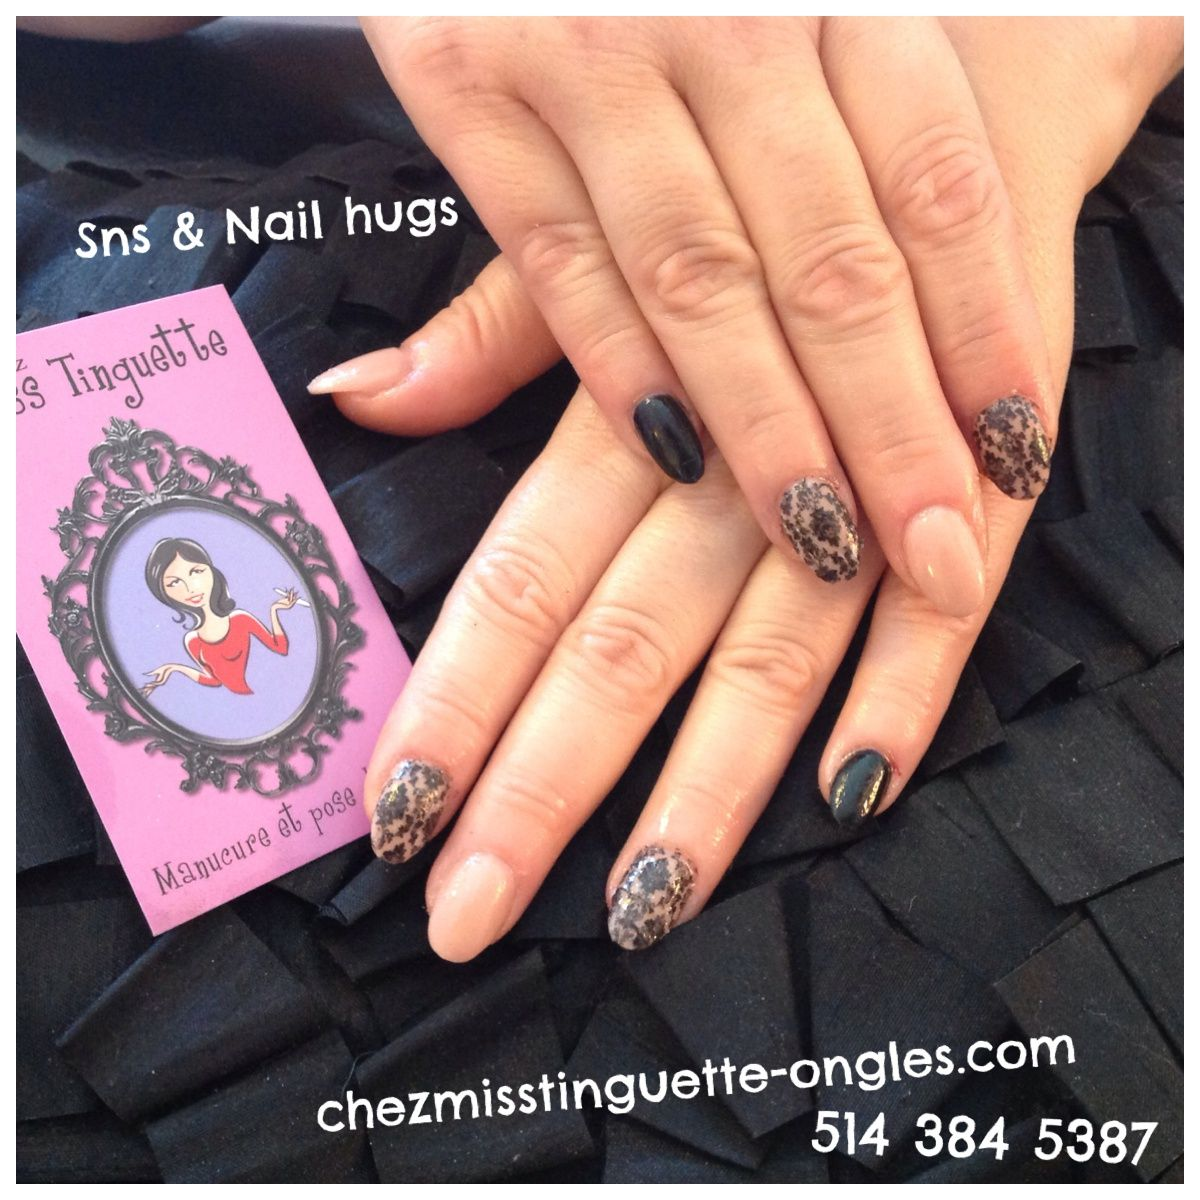 Ongles #damask noir sur SNS nude, on aime! #nails #nailhug #damask ...